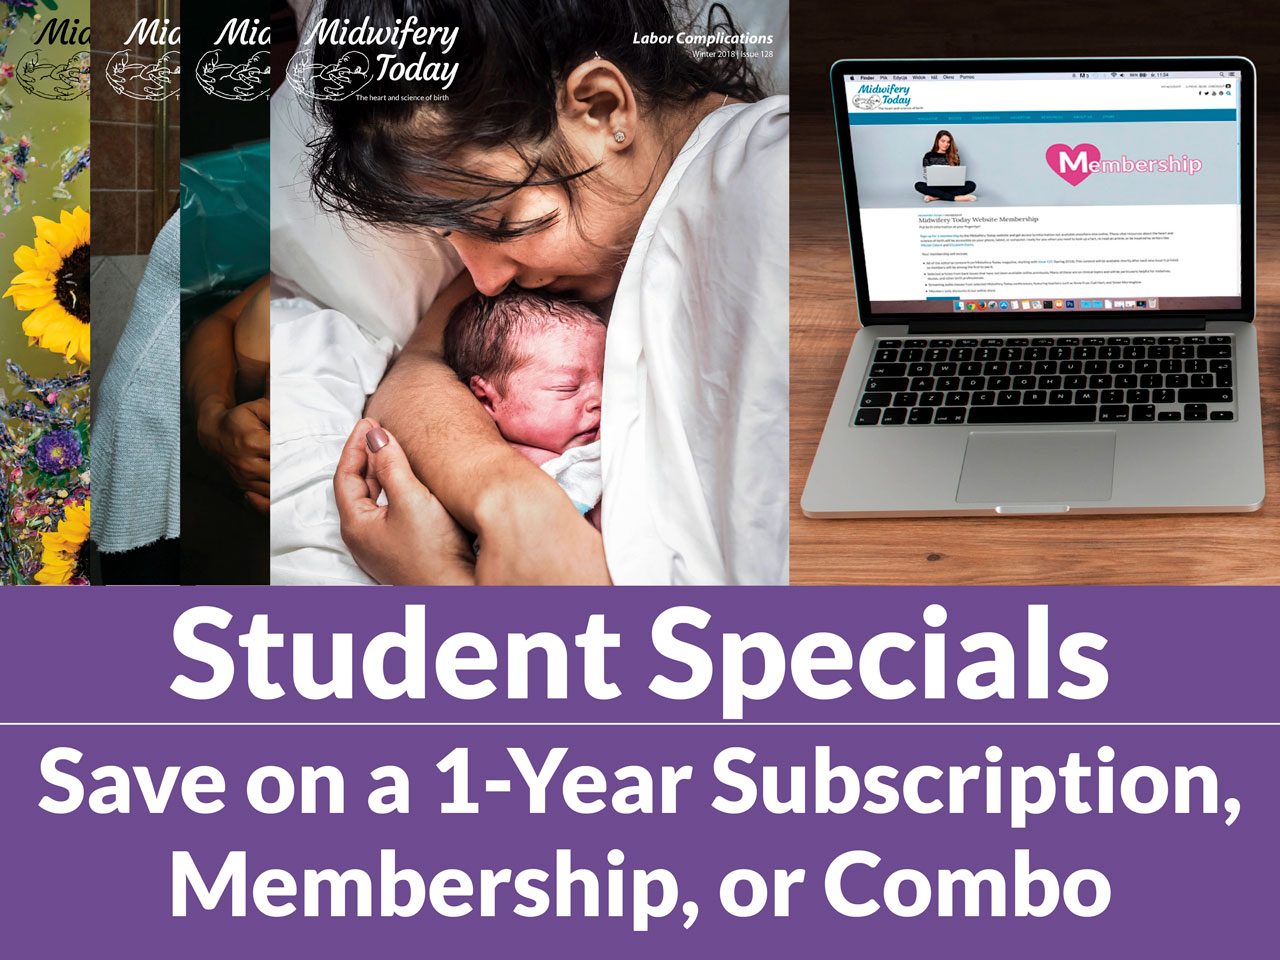 Student Special on memberships and subscriptions